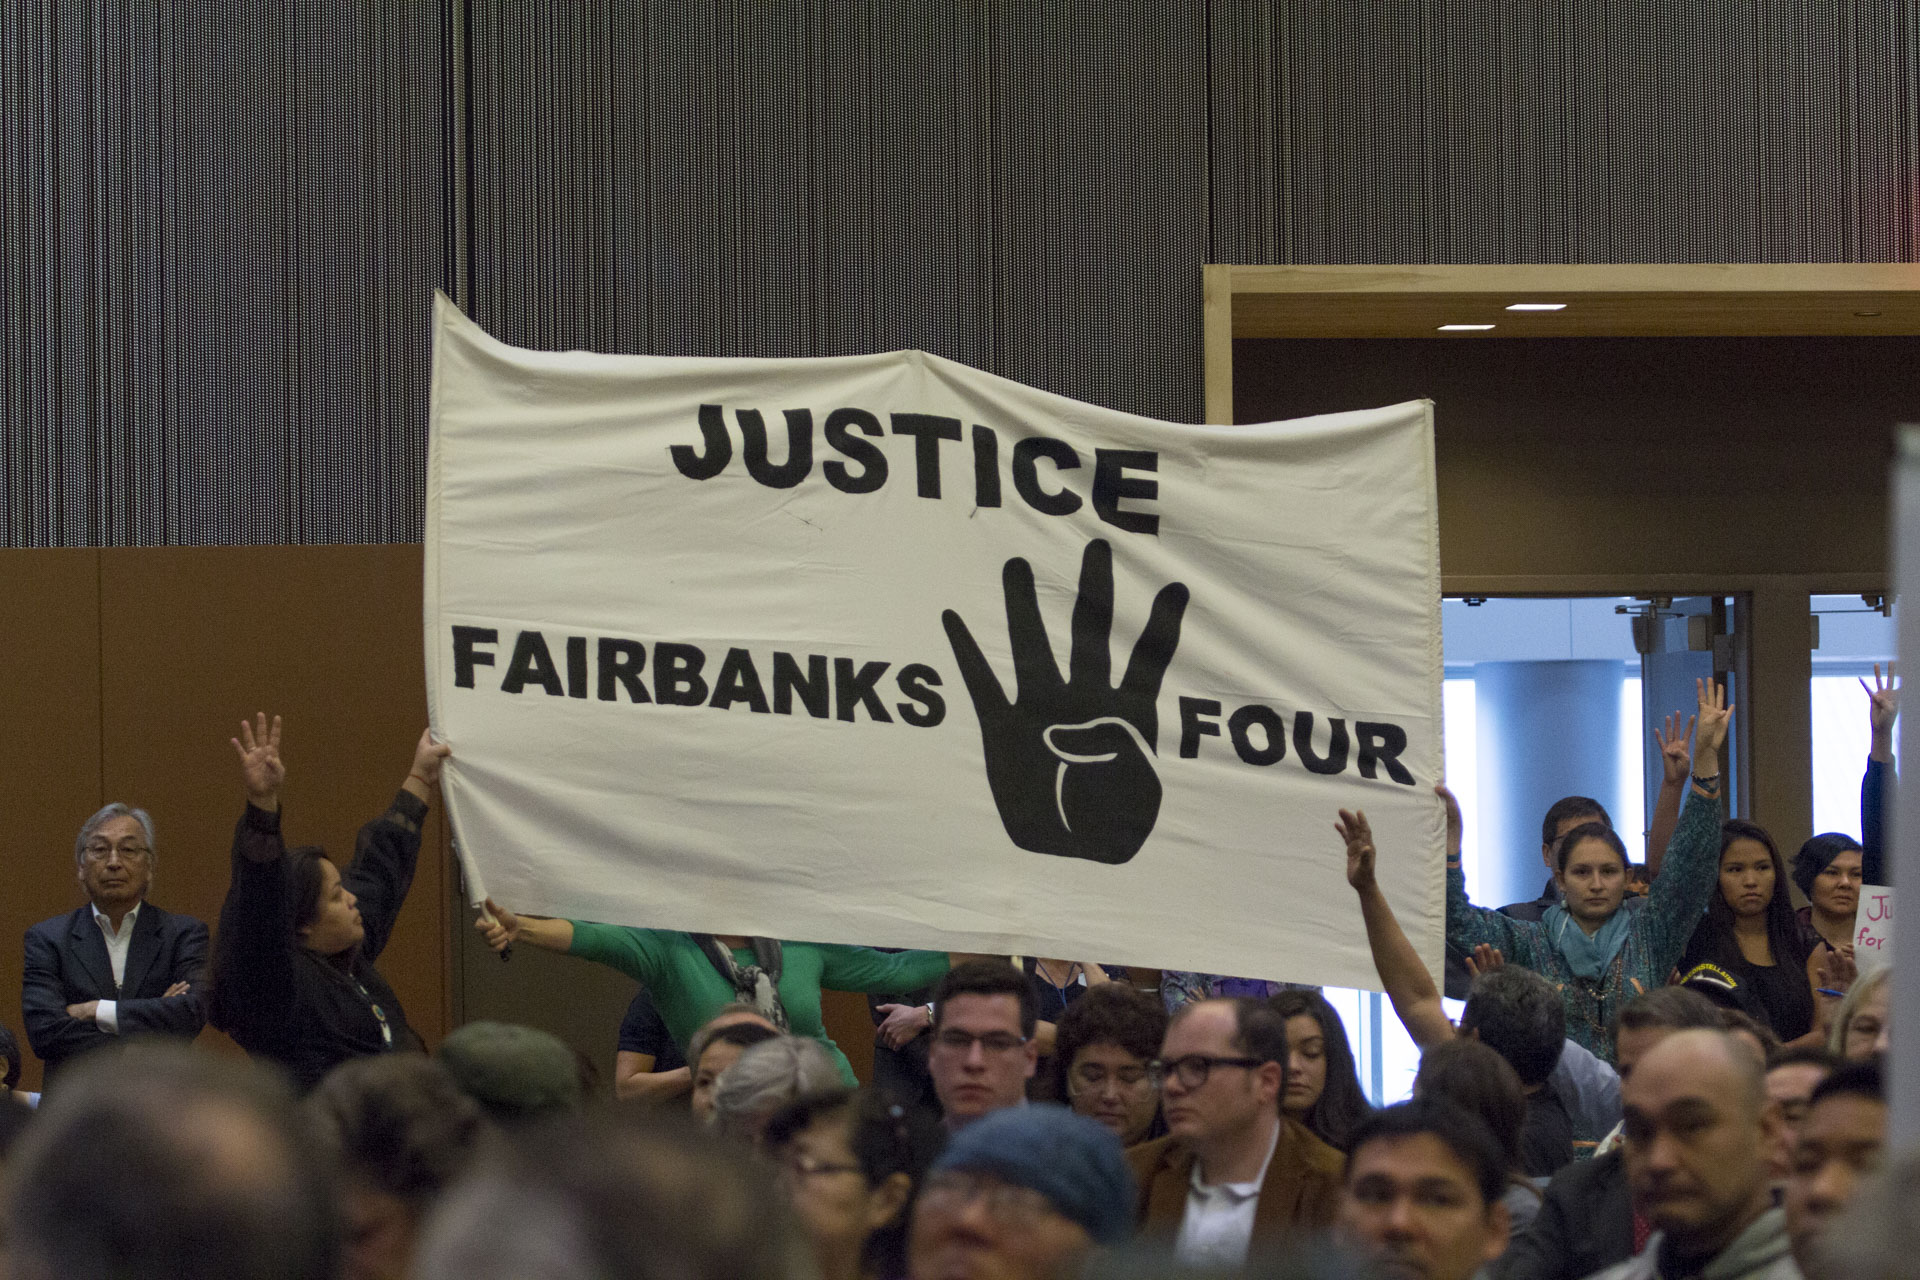 Fairbanks Four Banner at AFN 2015